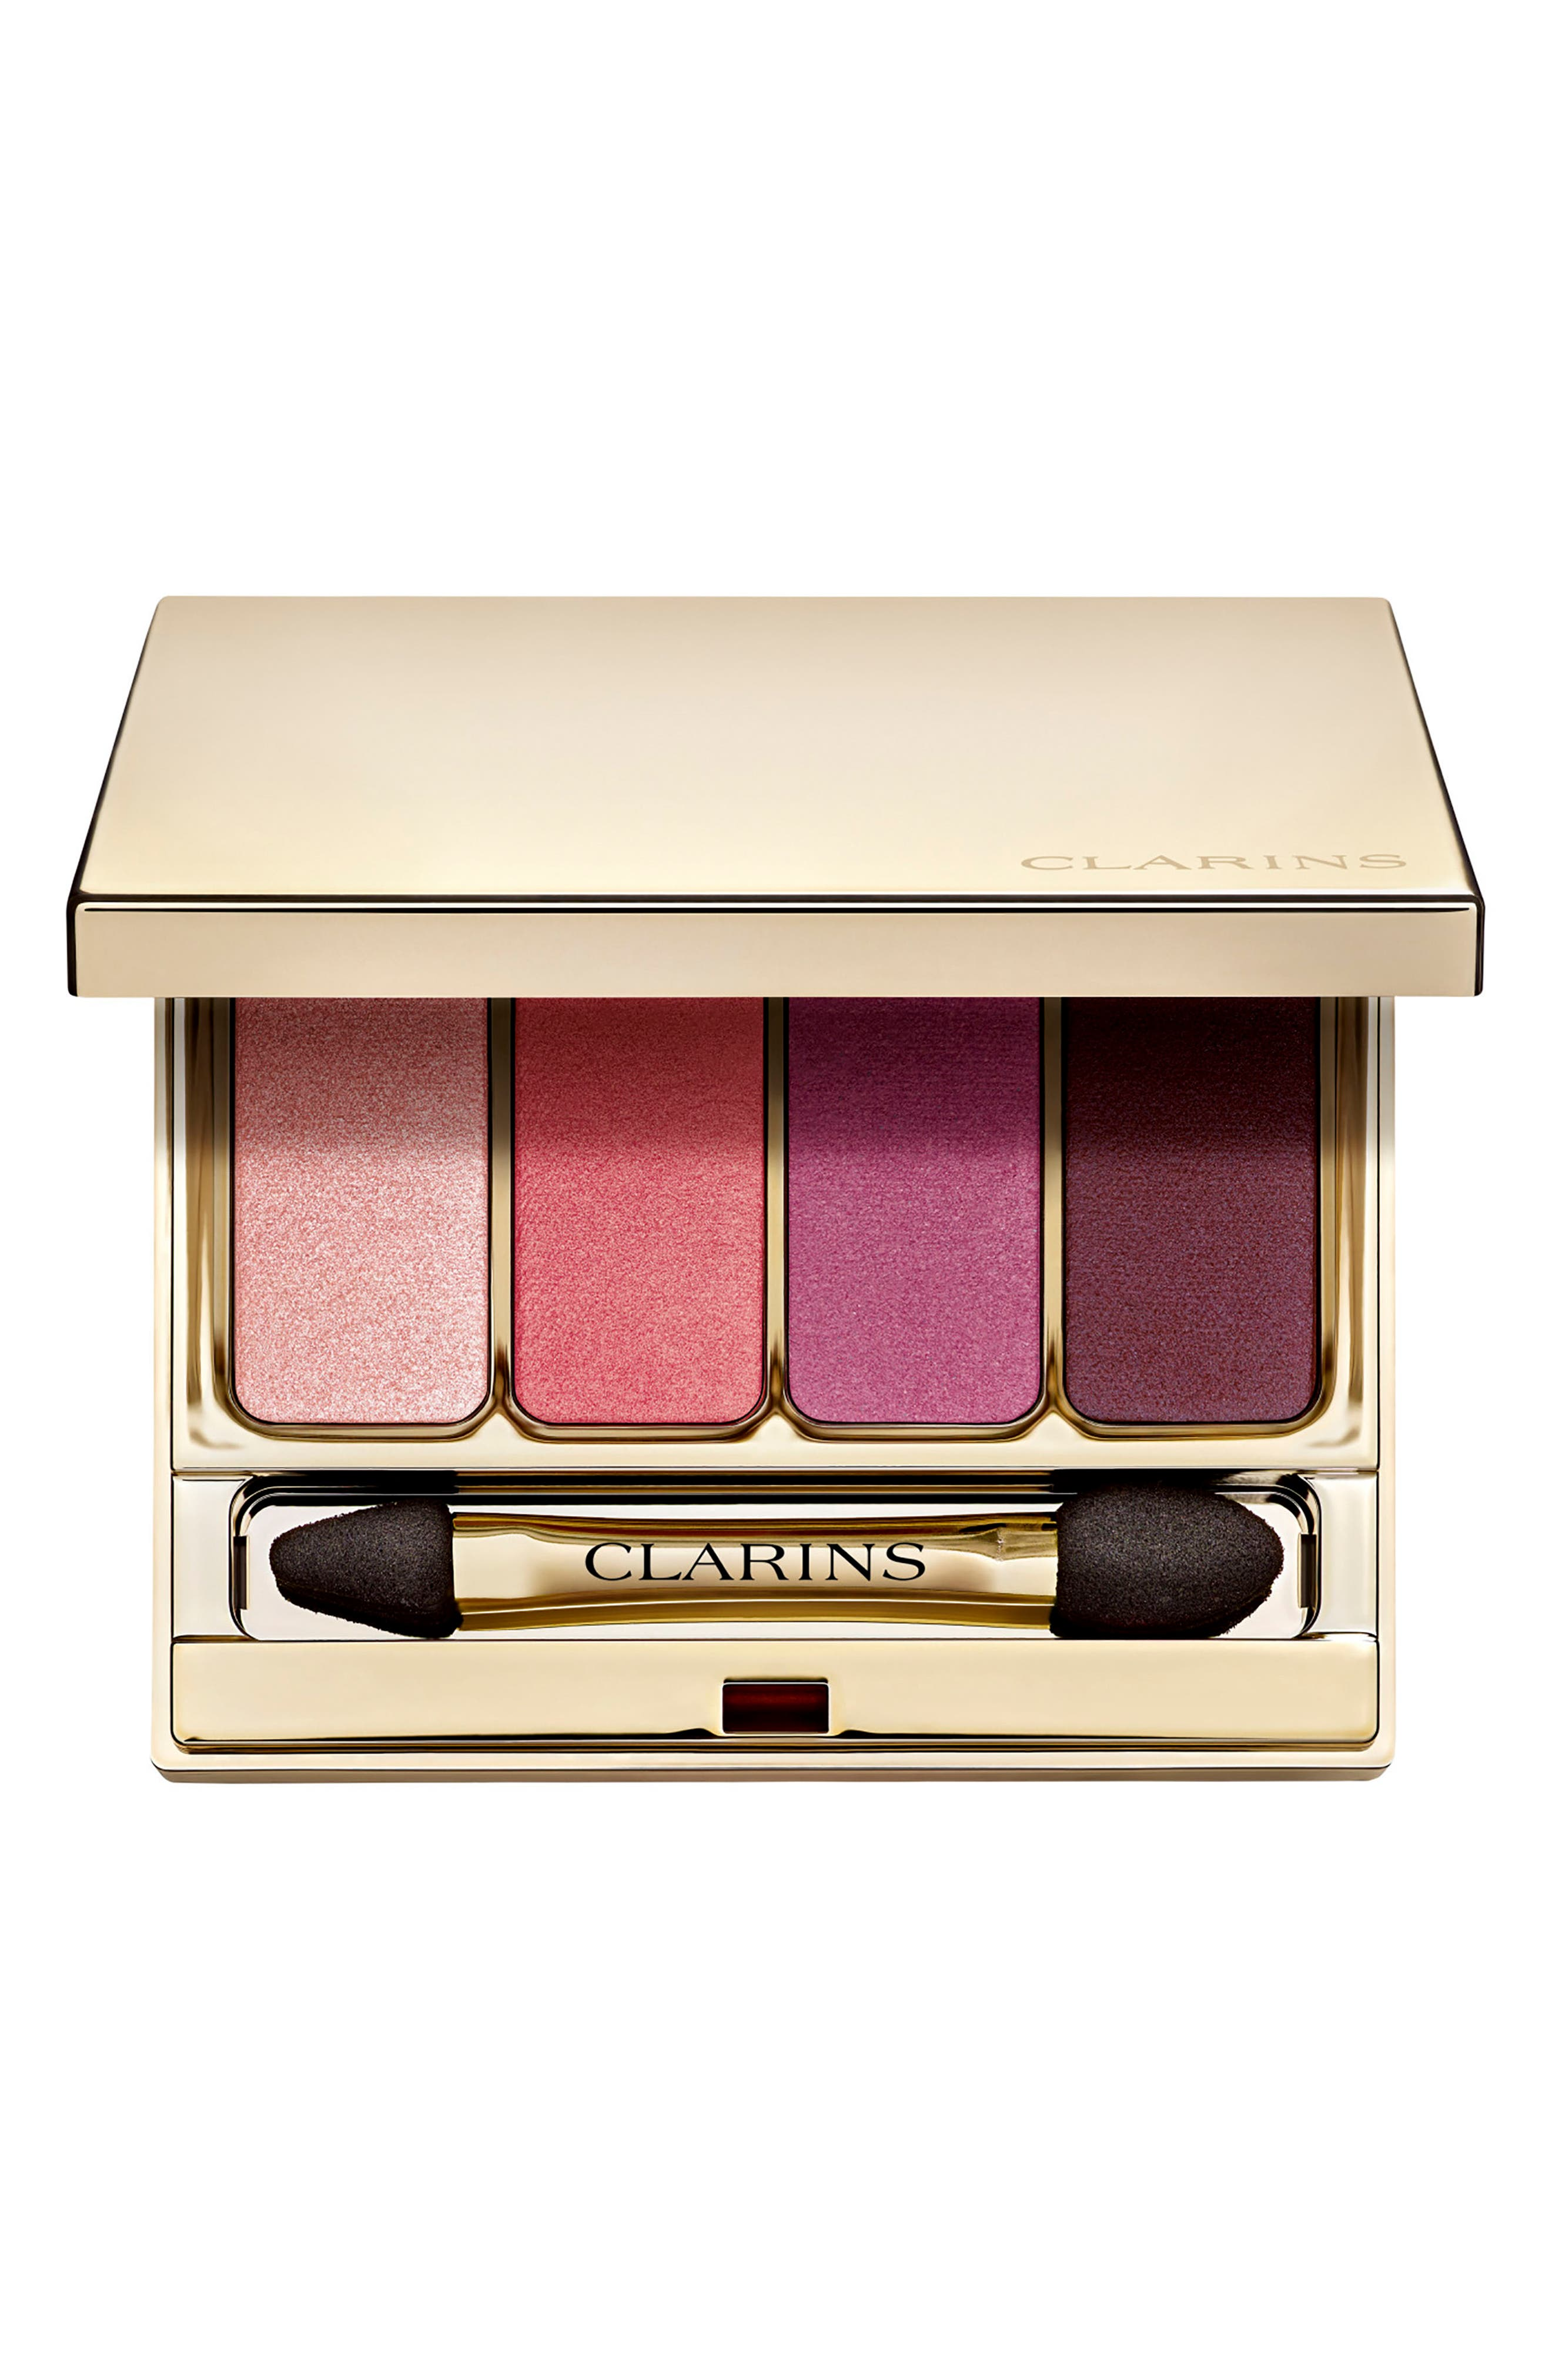 4-Color Eyeshadow Palette,                             Main thumbnail 1, color,                             07 Lovely Rose